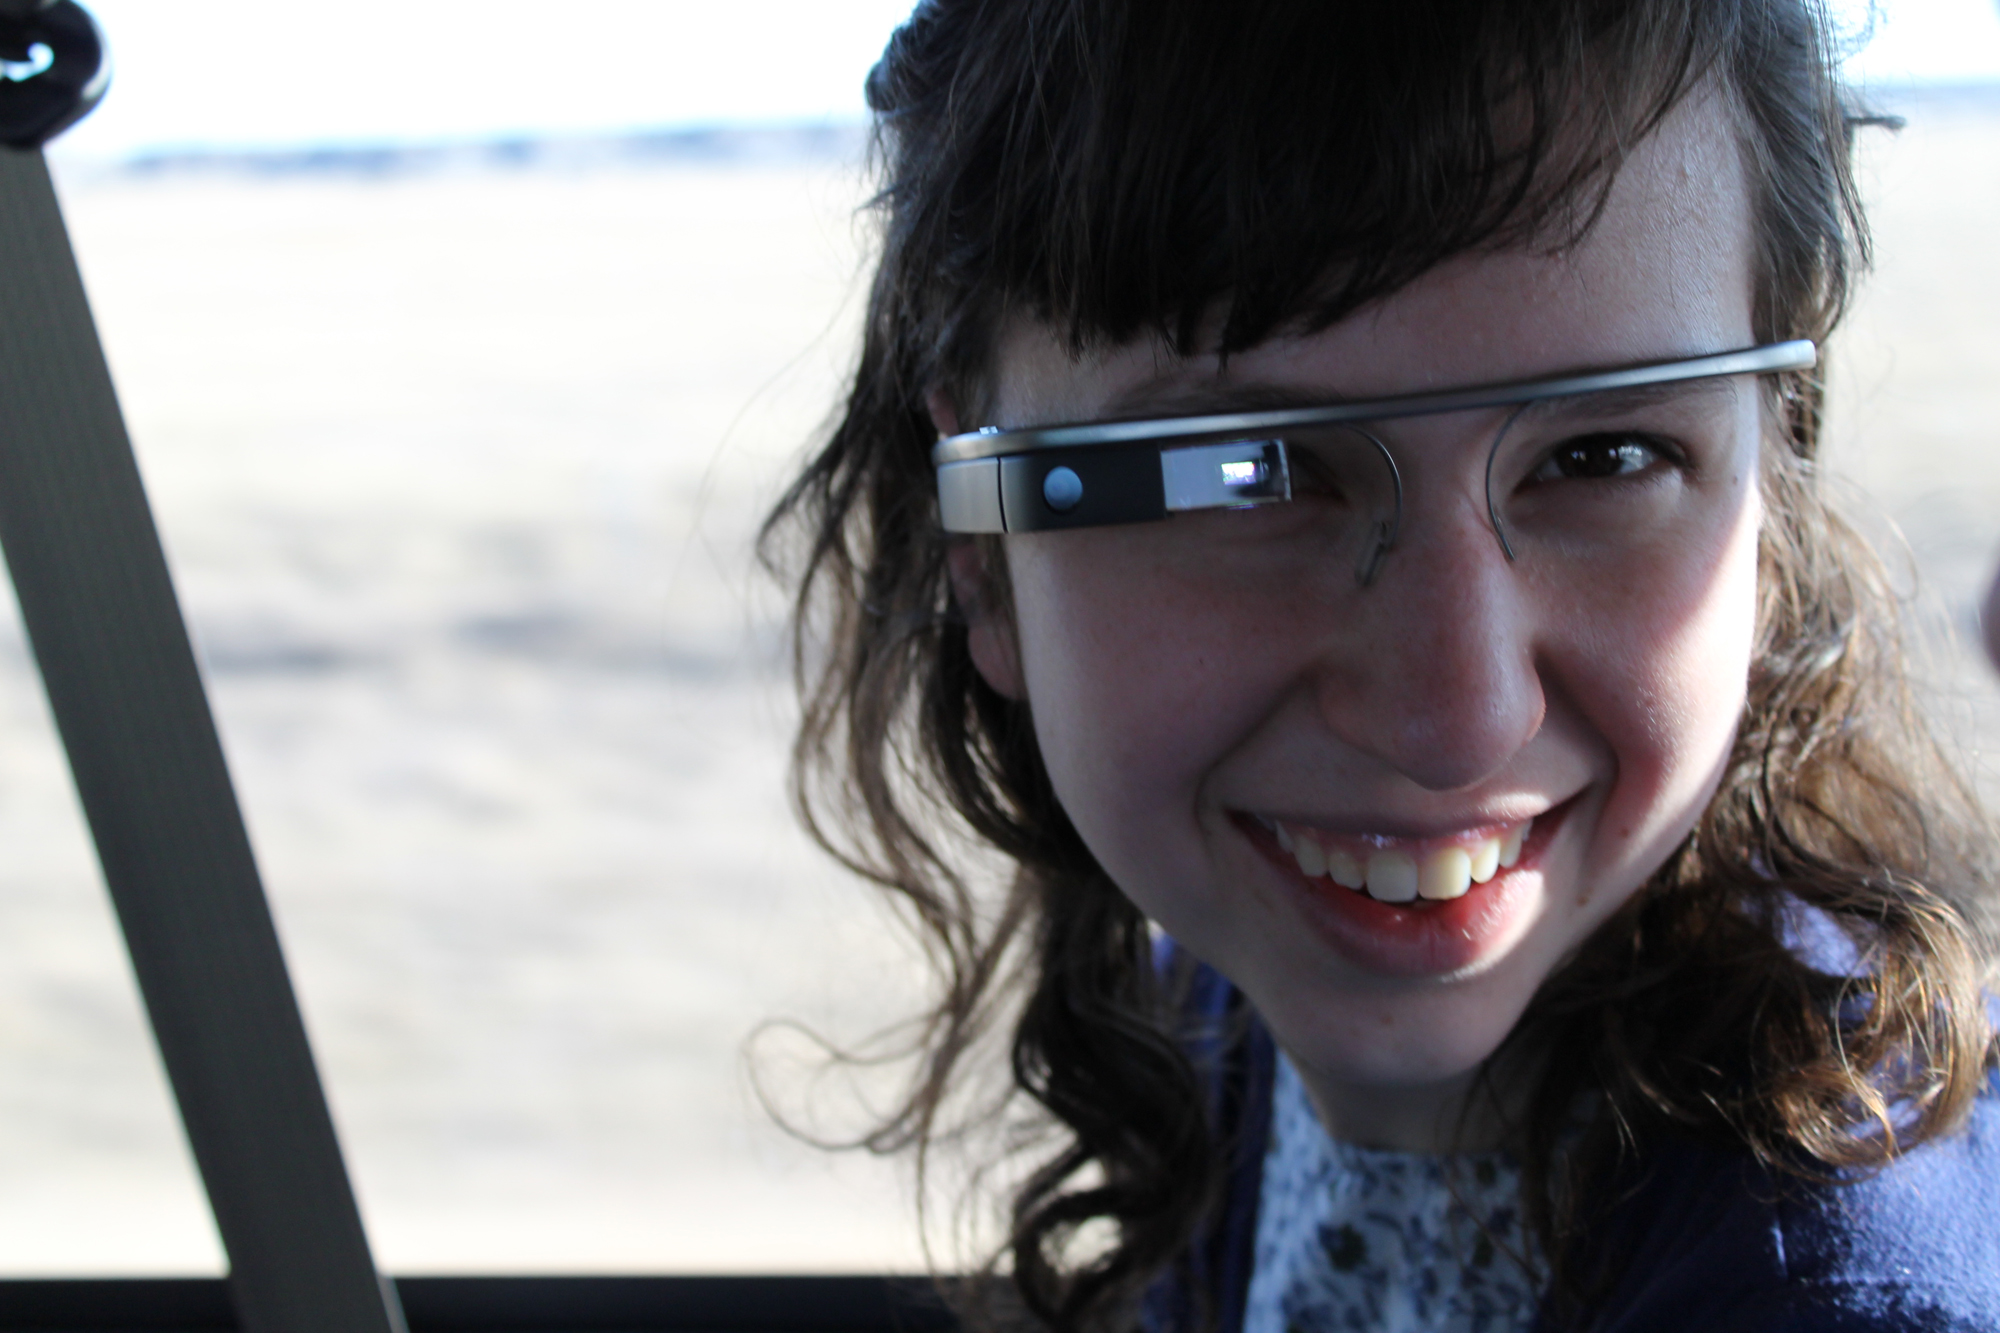 Senior Karli Amstadt models Google Glass while on a mission trip to South Dakota over spring break. Photo by Noah Manskar